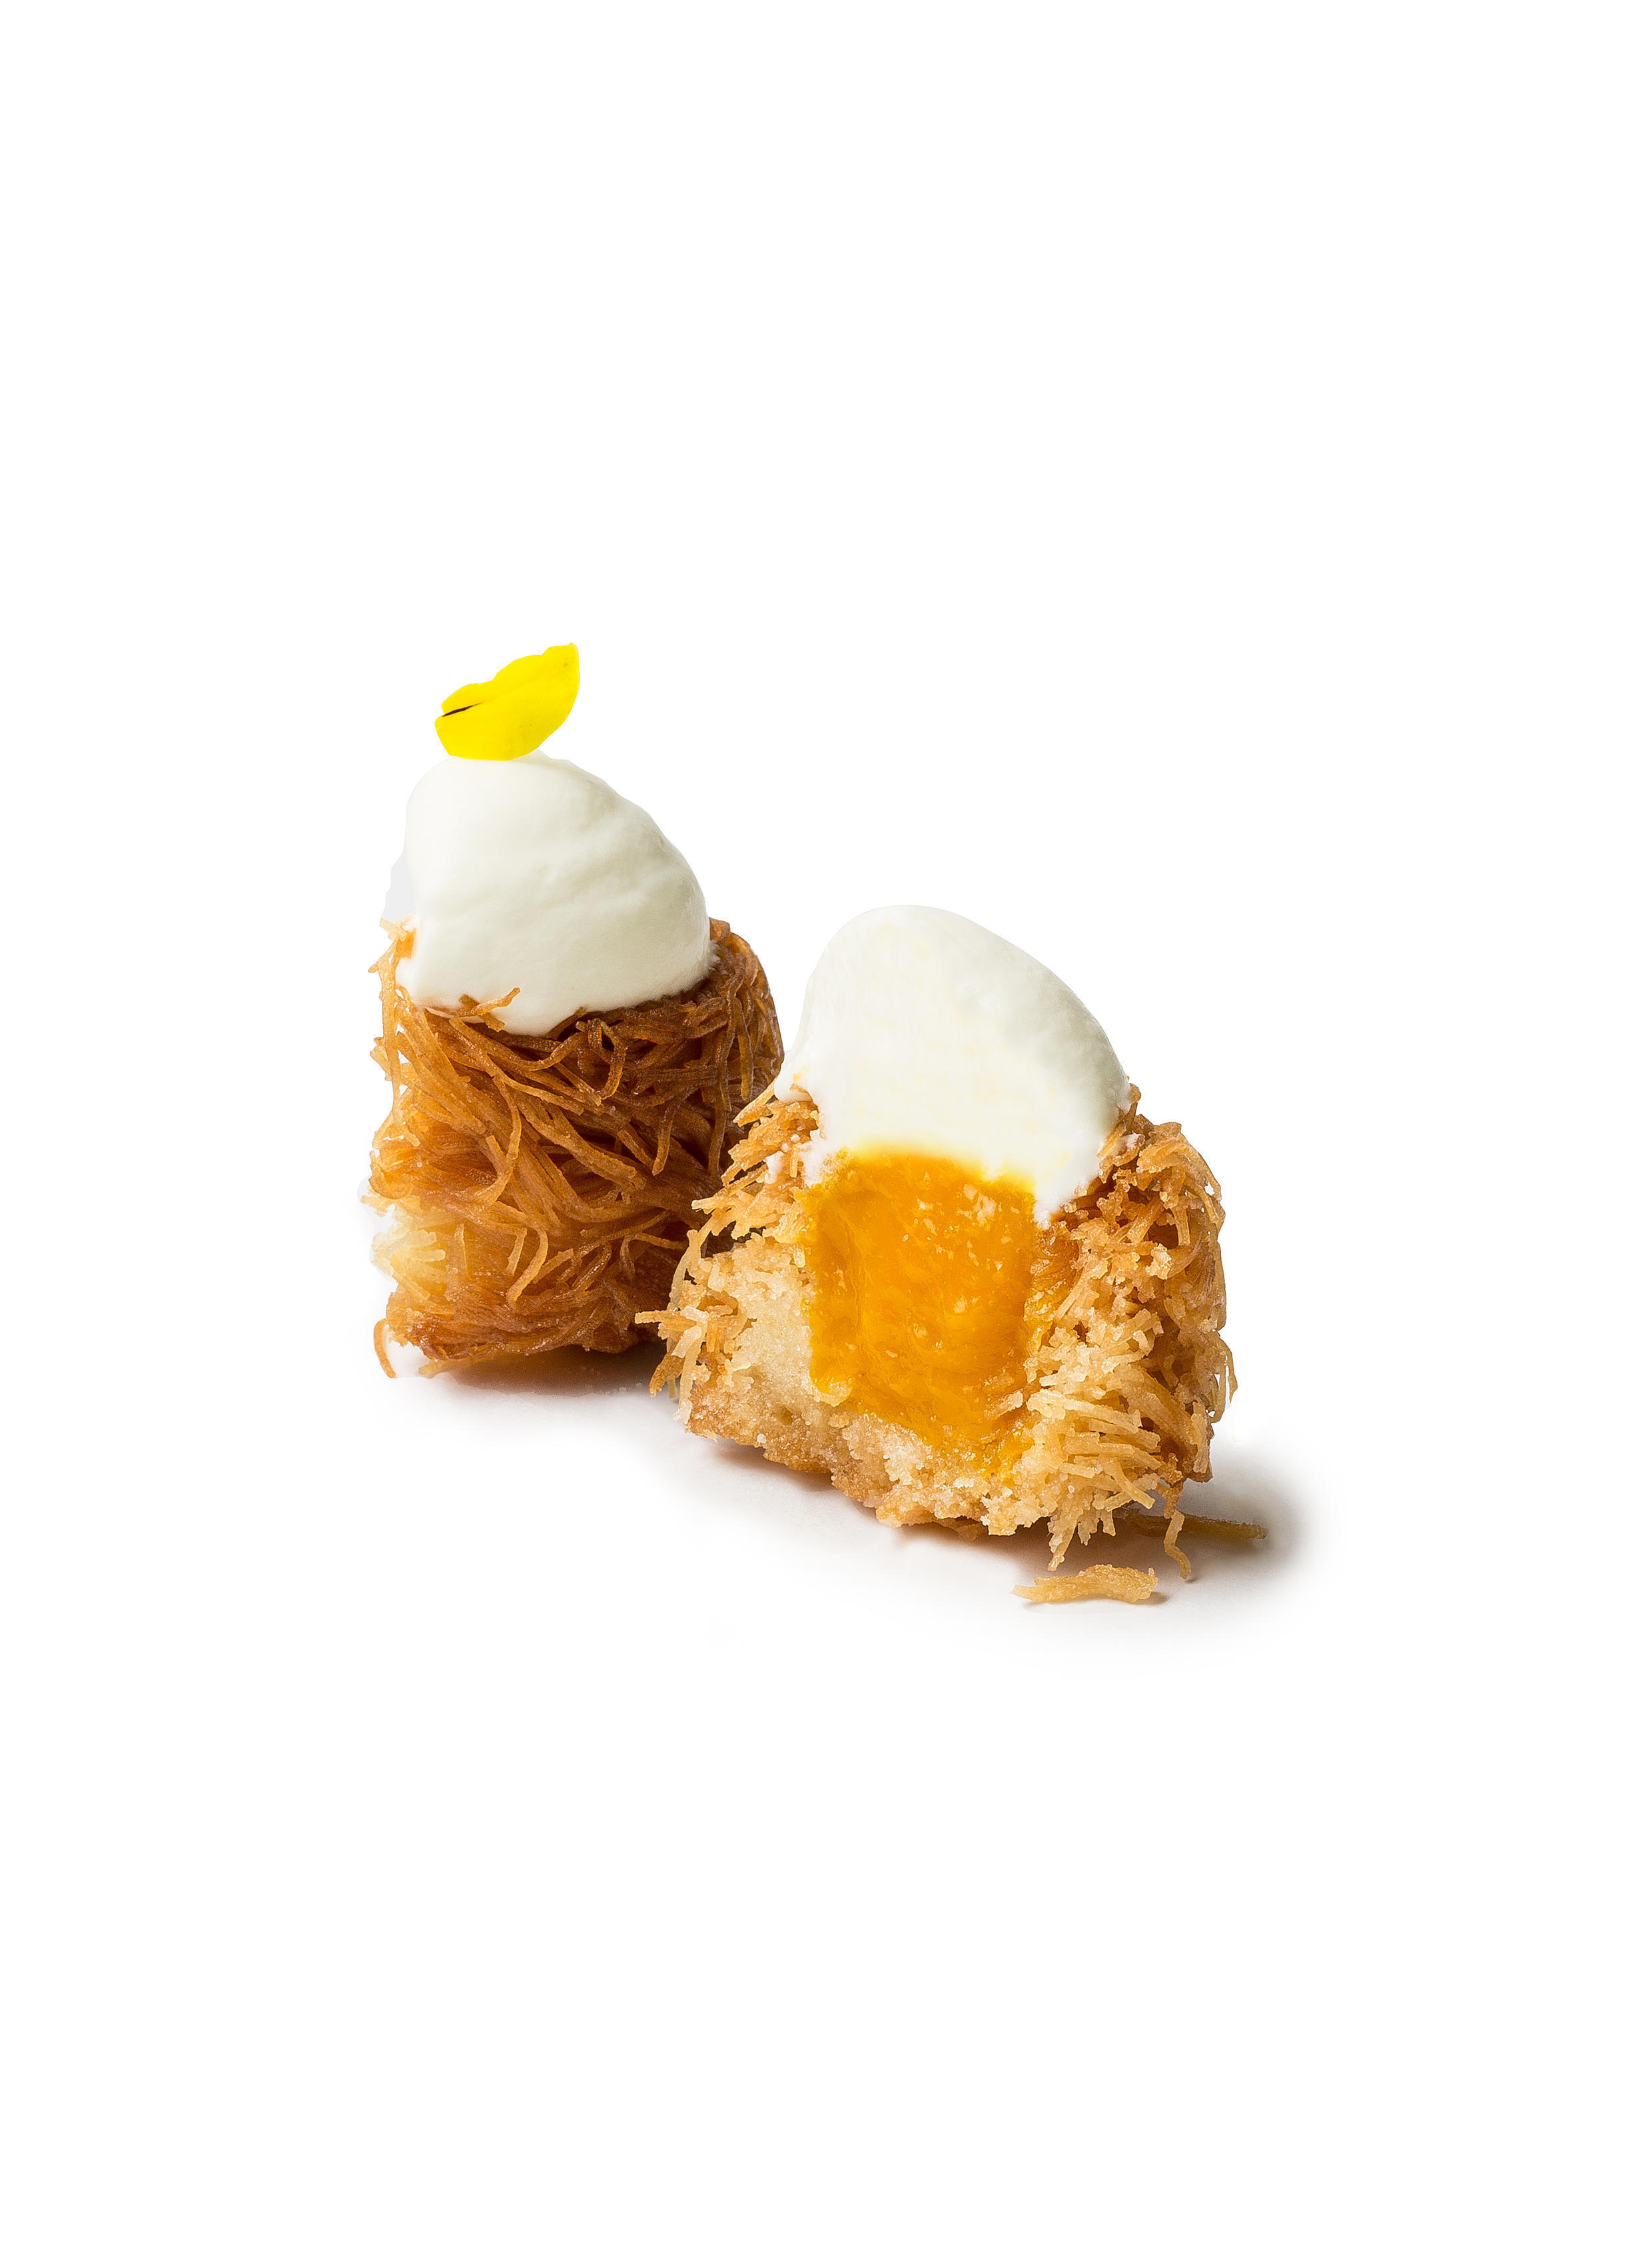 Nid pâtissier by Myriam Sabet, with a mango filling and jamsin flavoured whipped cream on top